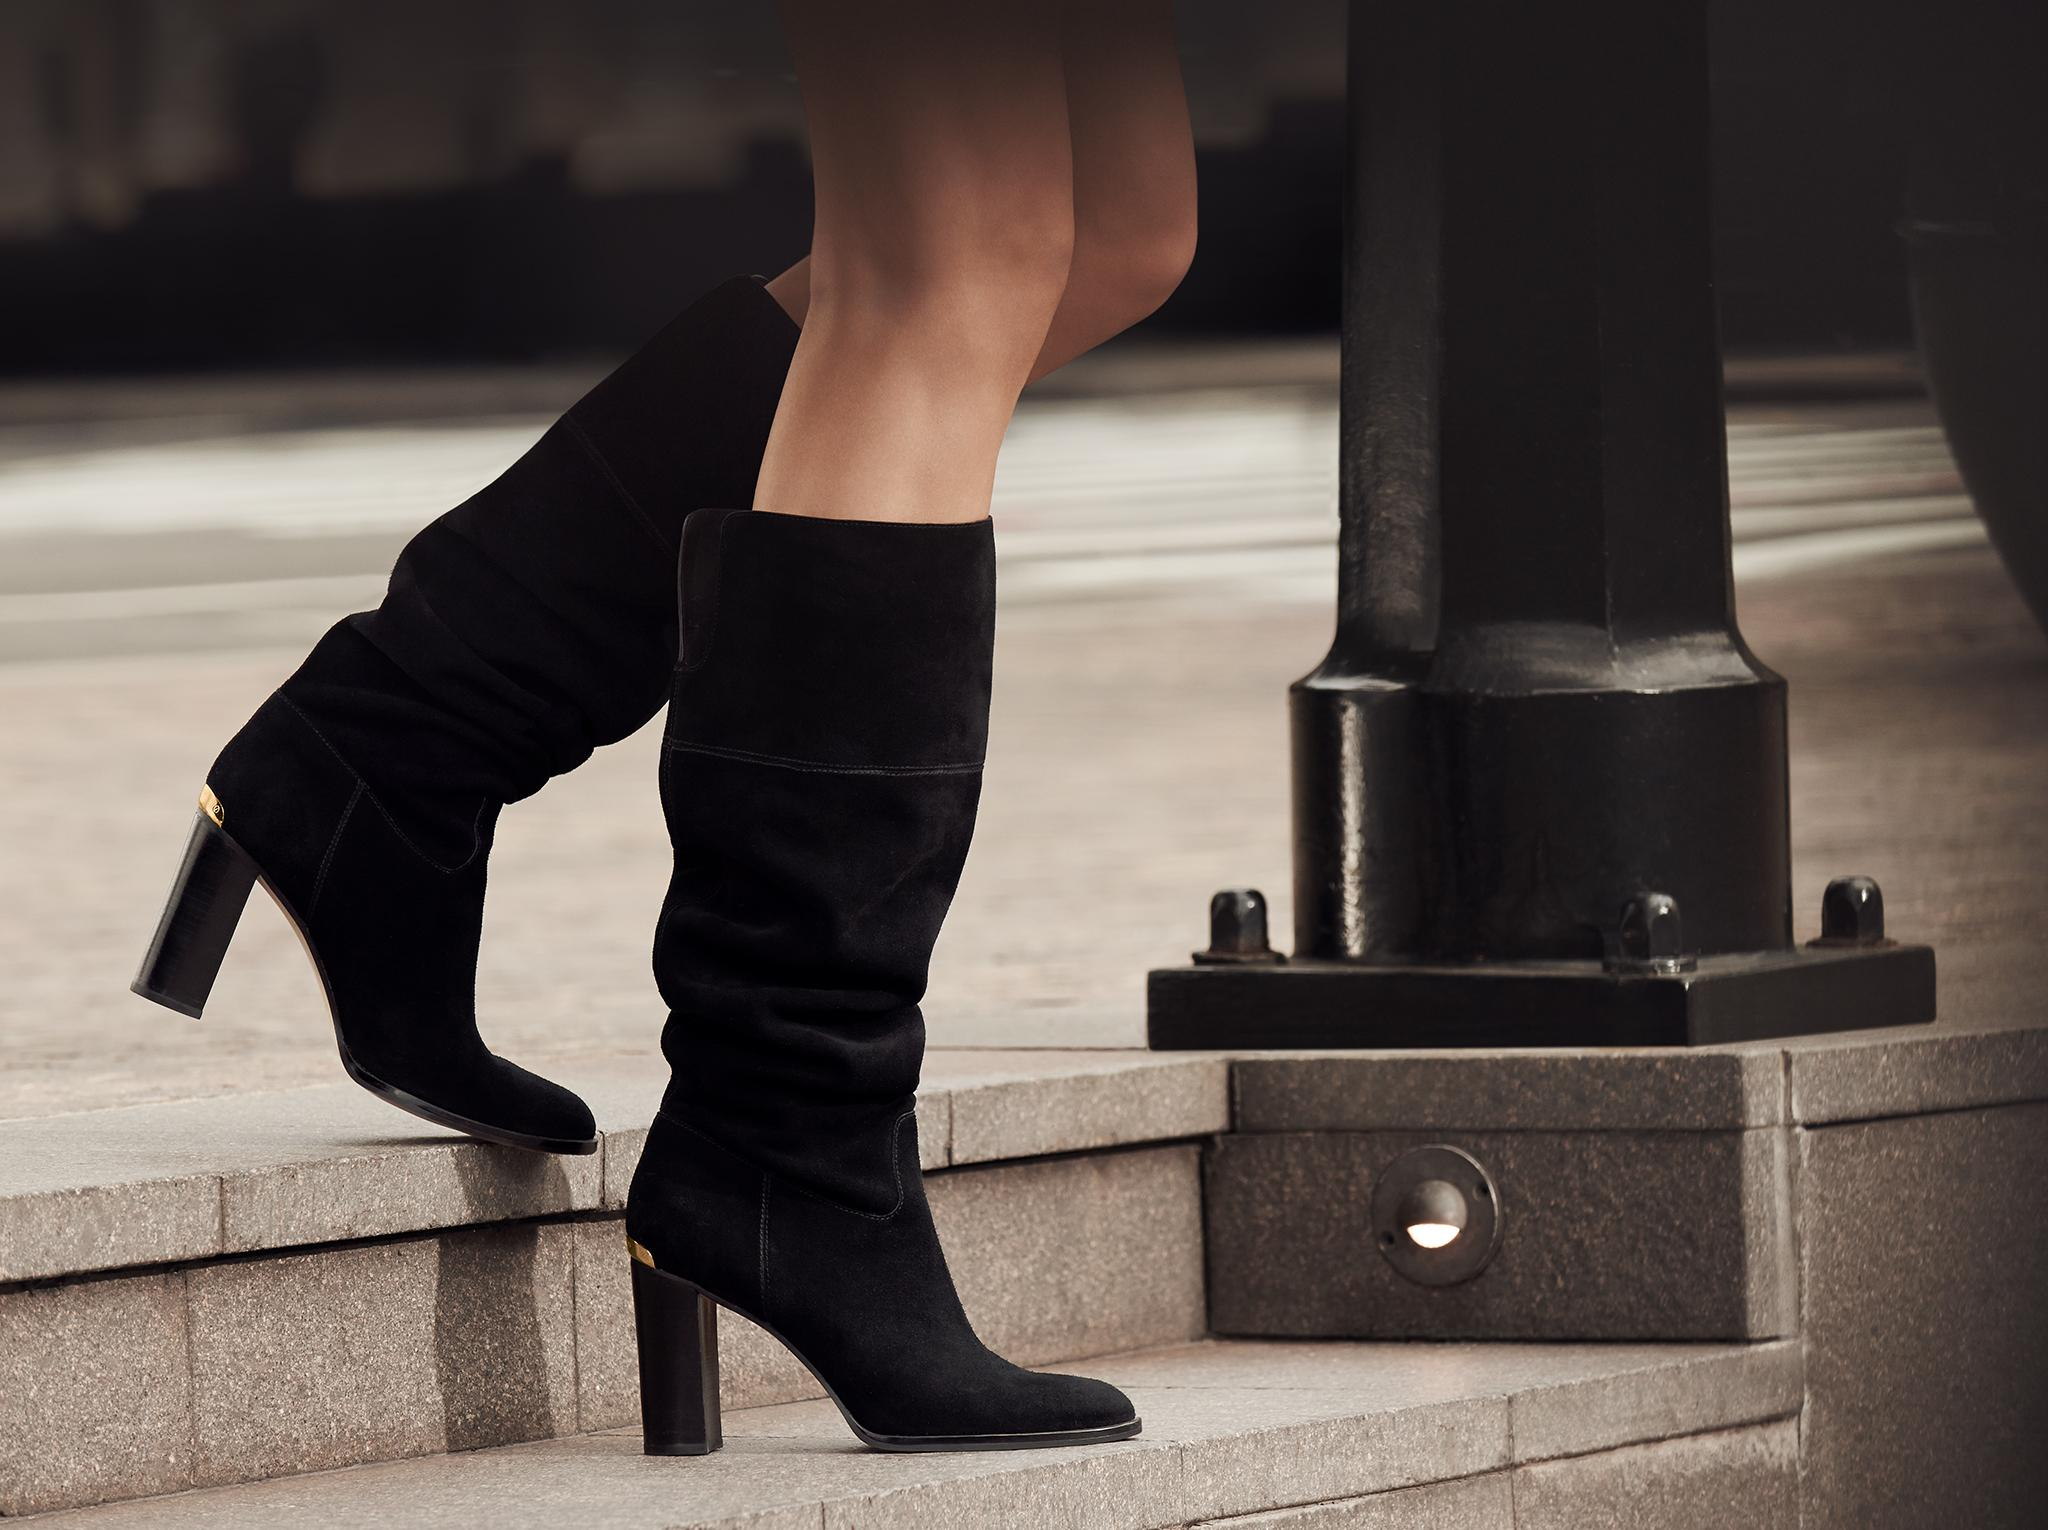 Give your old shoes the boot—and get these. http://t.co/PMWDtY83cZ #JetSetGo http://t.co/vqYCGxIuH1